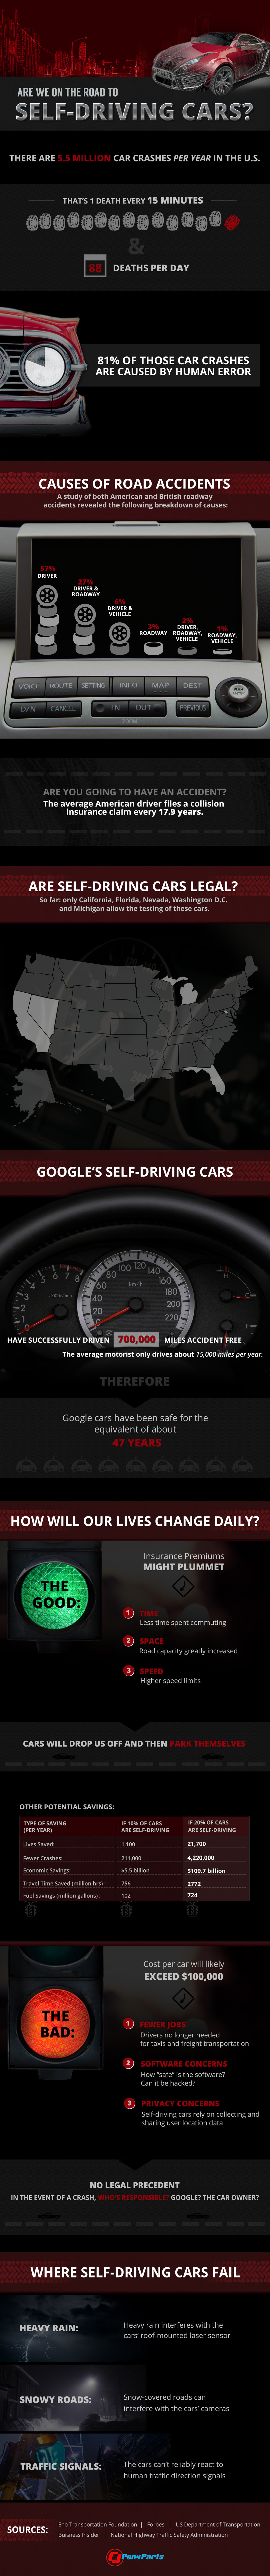 Are We On The Road to Self-Driving Cars? #infographic